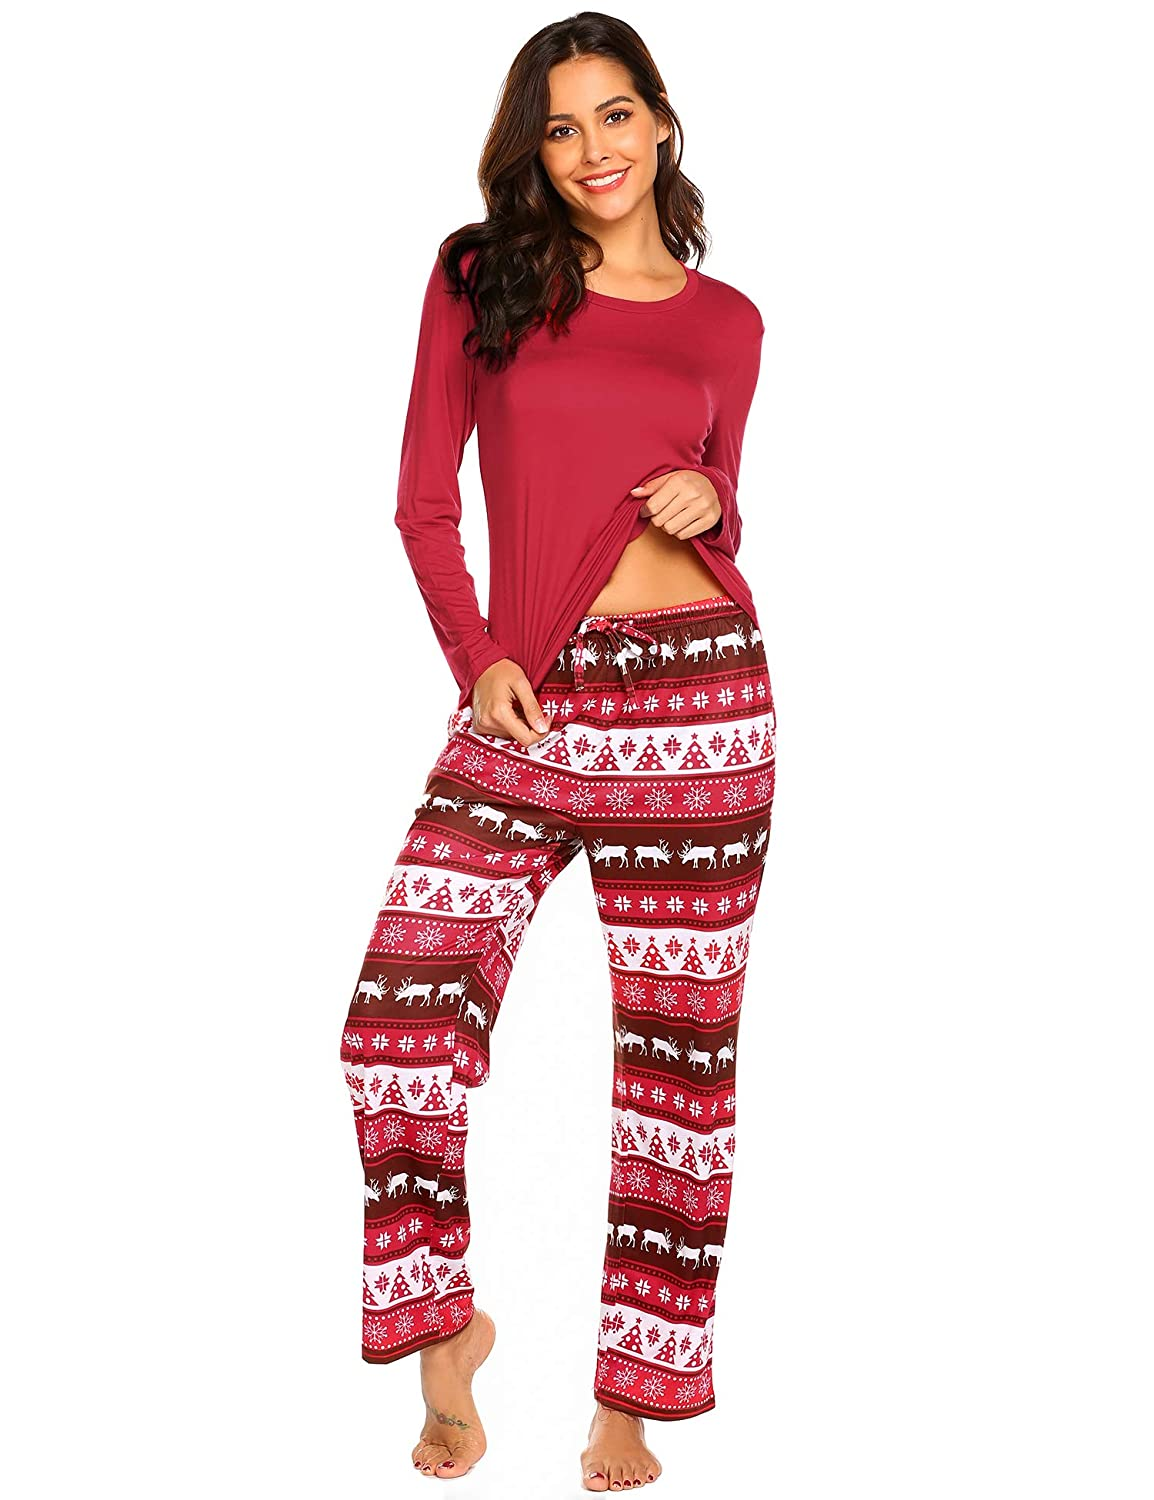 Ekouaer Women s Pajamas Soft Christmas 2 Pieces Top and Pants Sleepwear Pjs  Set at Amazon Women s Clothing store  b31362a7a